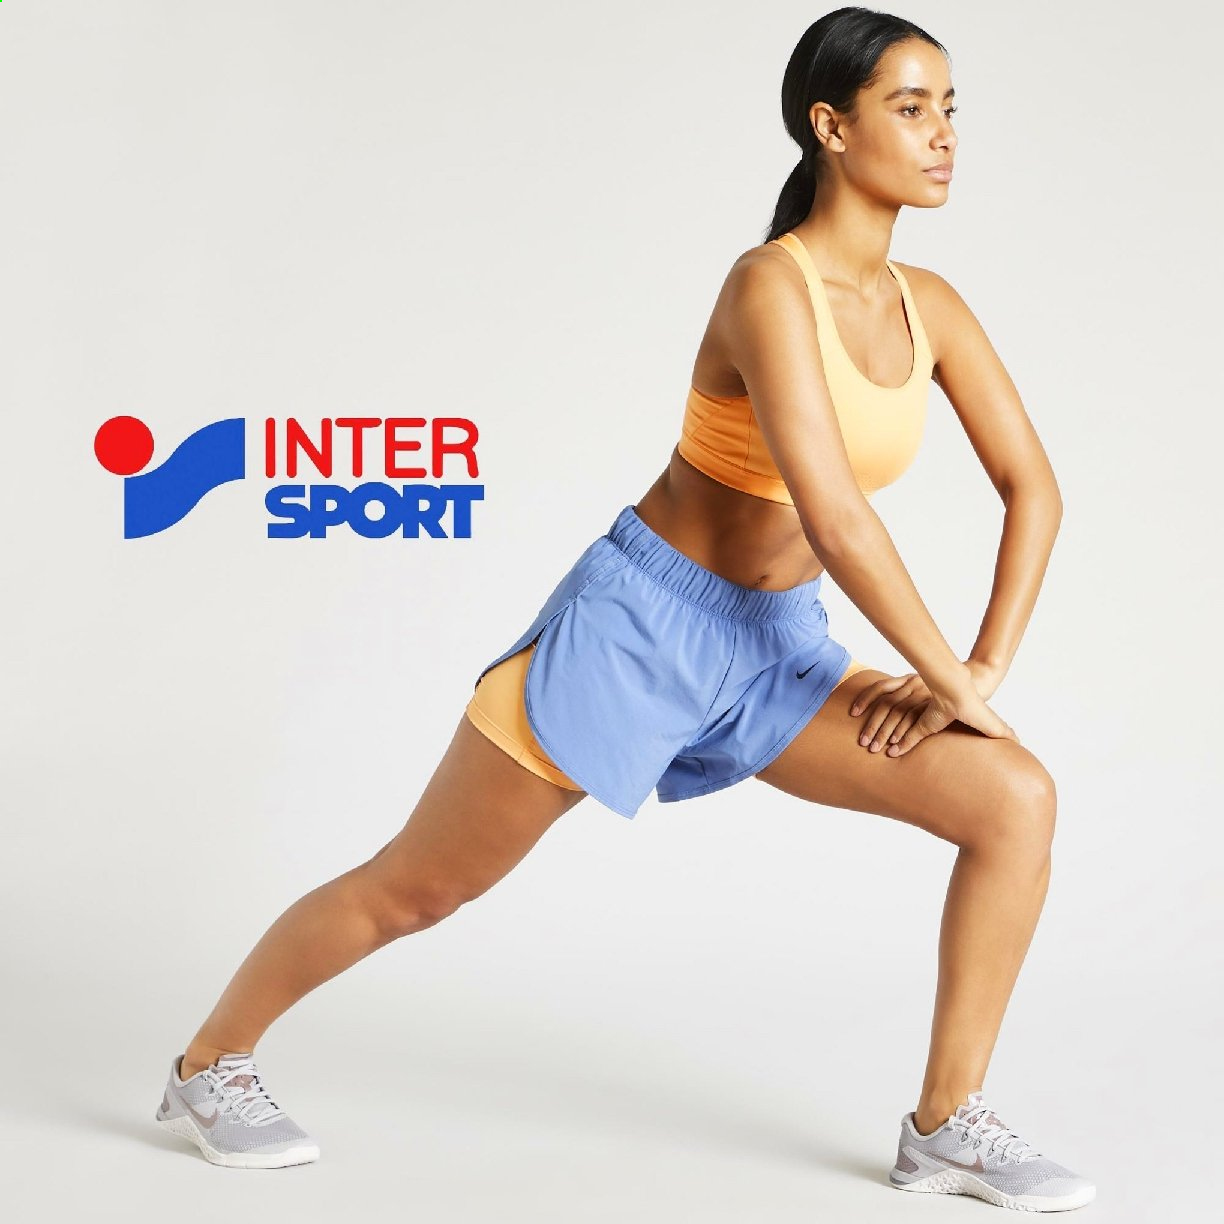 Kundeavis Intersport - 19.02.2020 - 01.04.2020. Side 1.